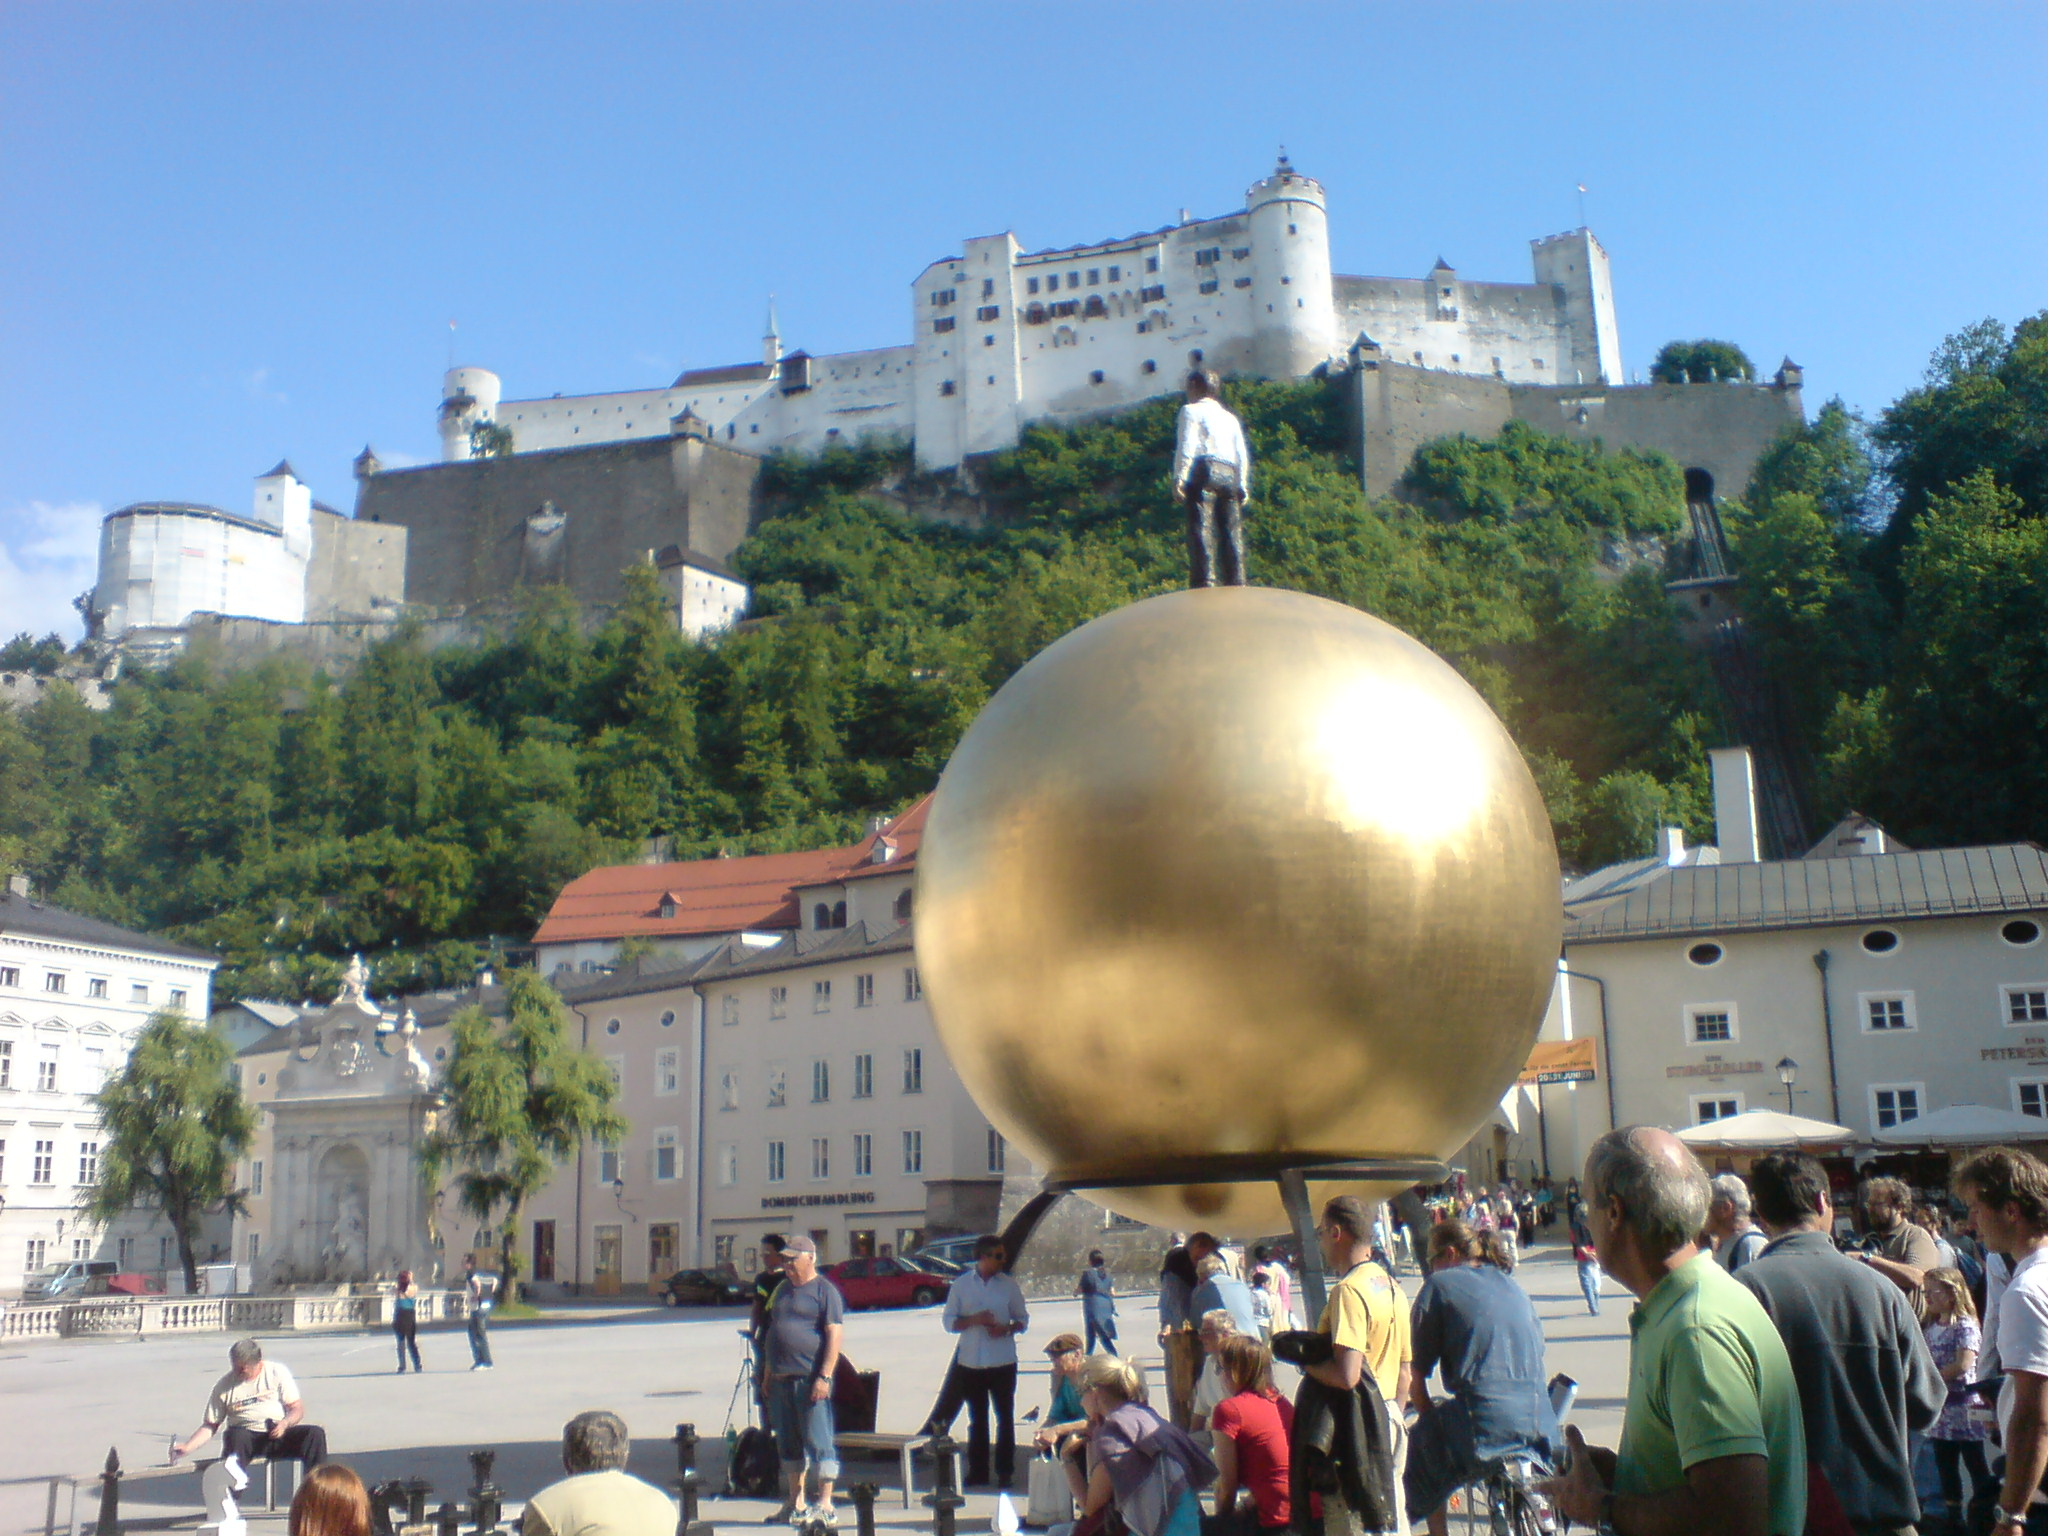 Spomenik povijesti i umjetnosti u Salzburgu. Izvor: https://upload.wikimedia.org/wikipedia/commons/e/e2/Salzburg_is_a_monument_of_history_and_art.jpg